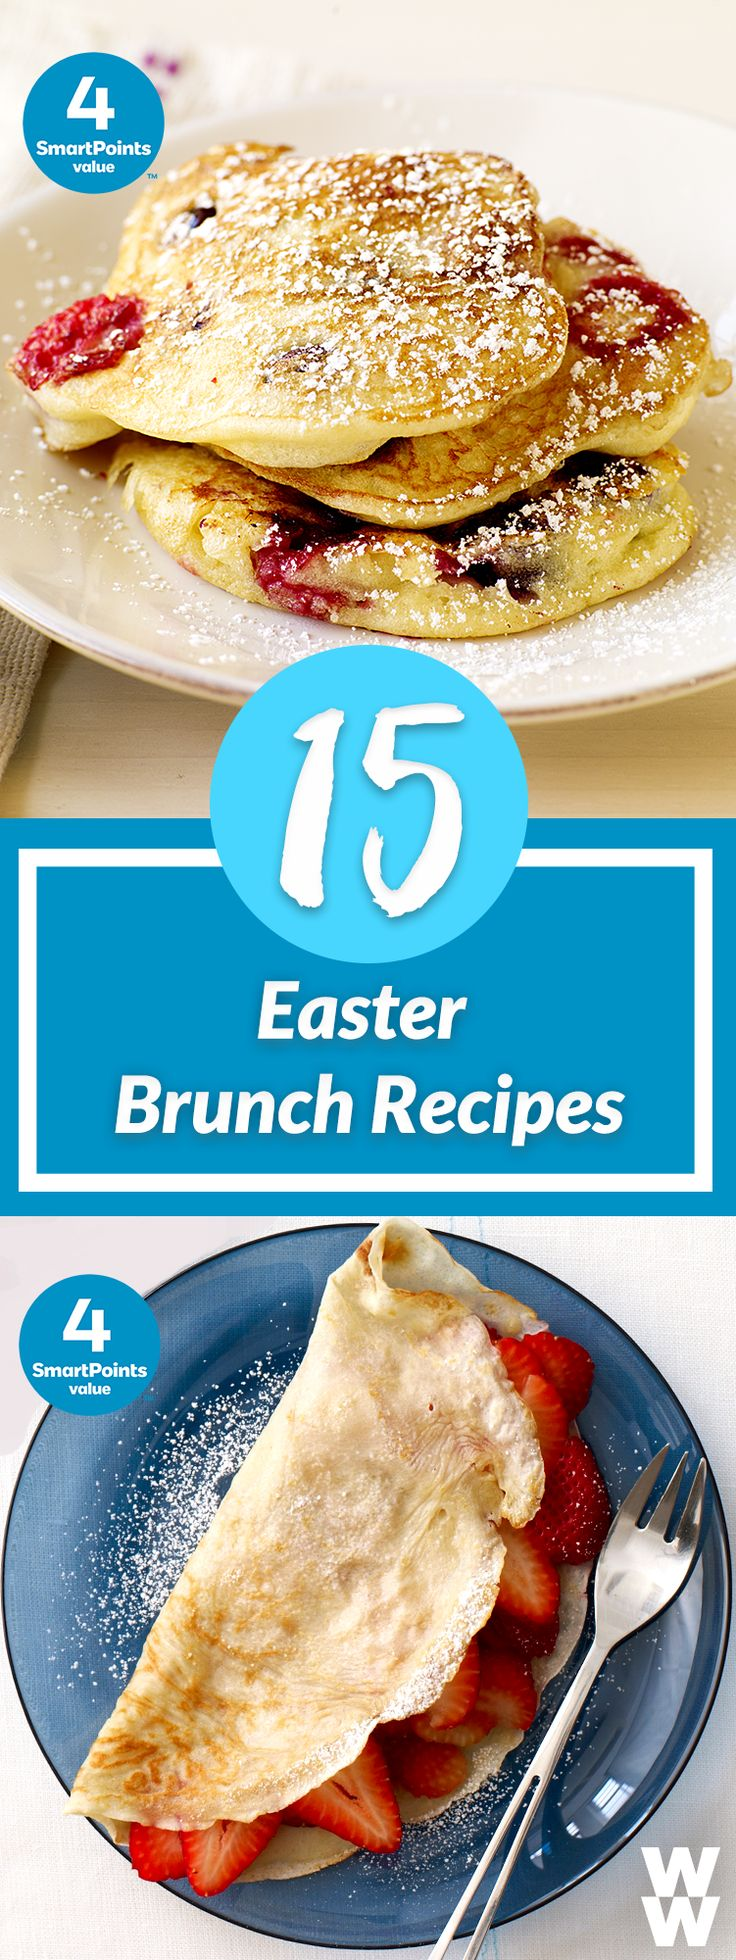 Fluffy pancakes, savory Baked Eggs, French Toast & more! |  Get 15 delicious recipes to cook up for your Easter Sunday brunch!